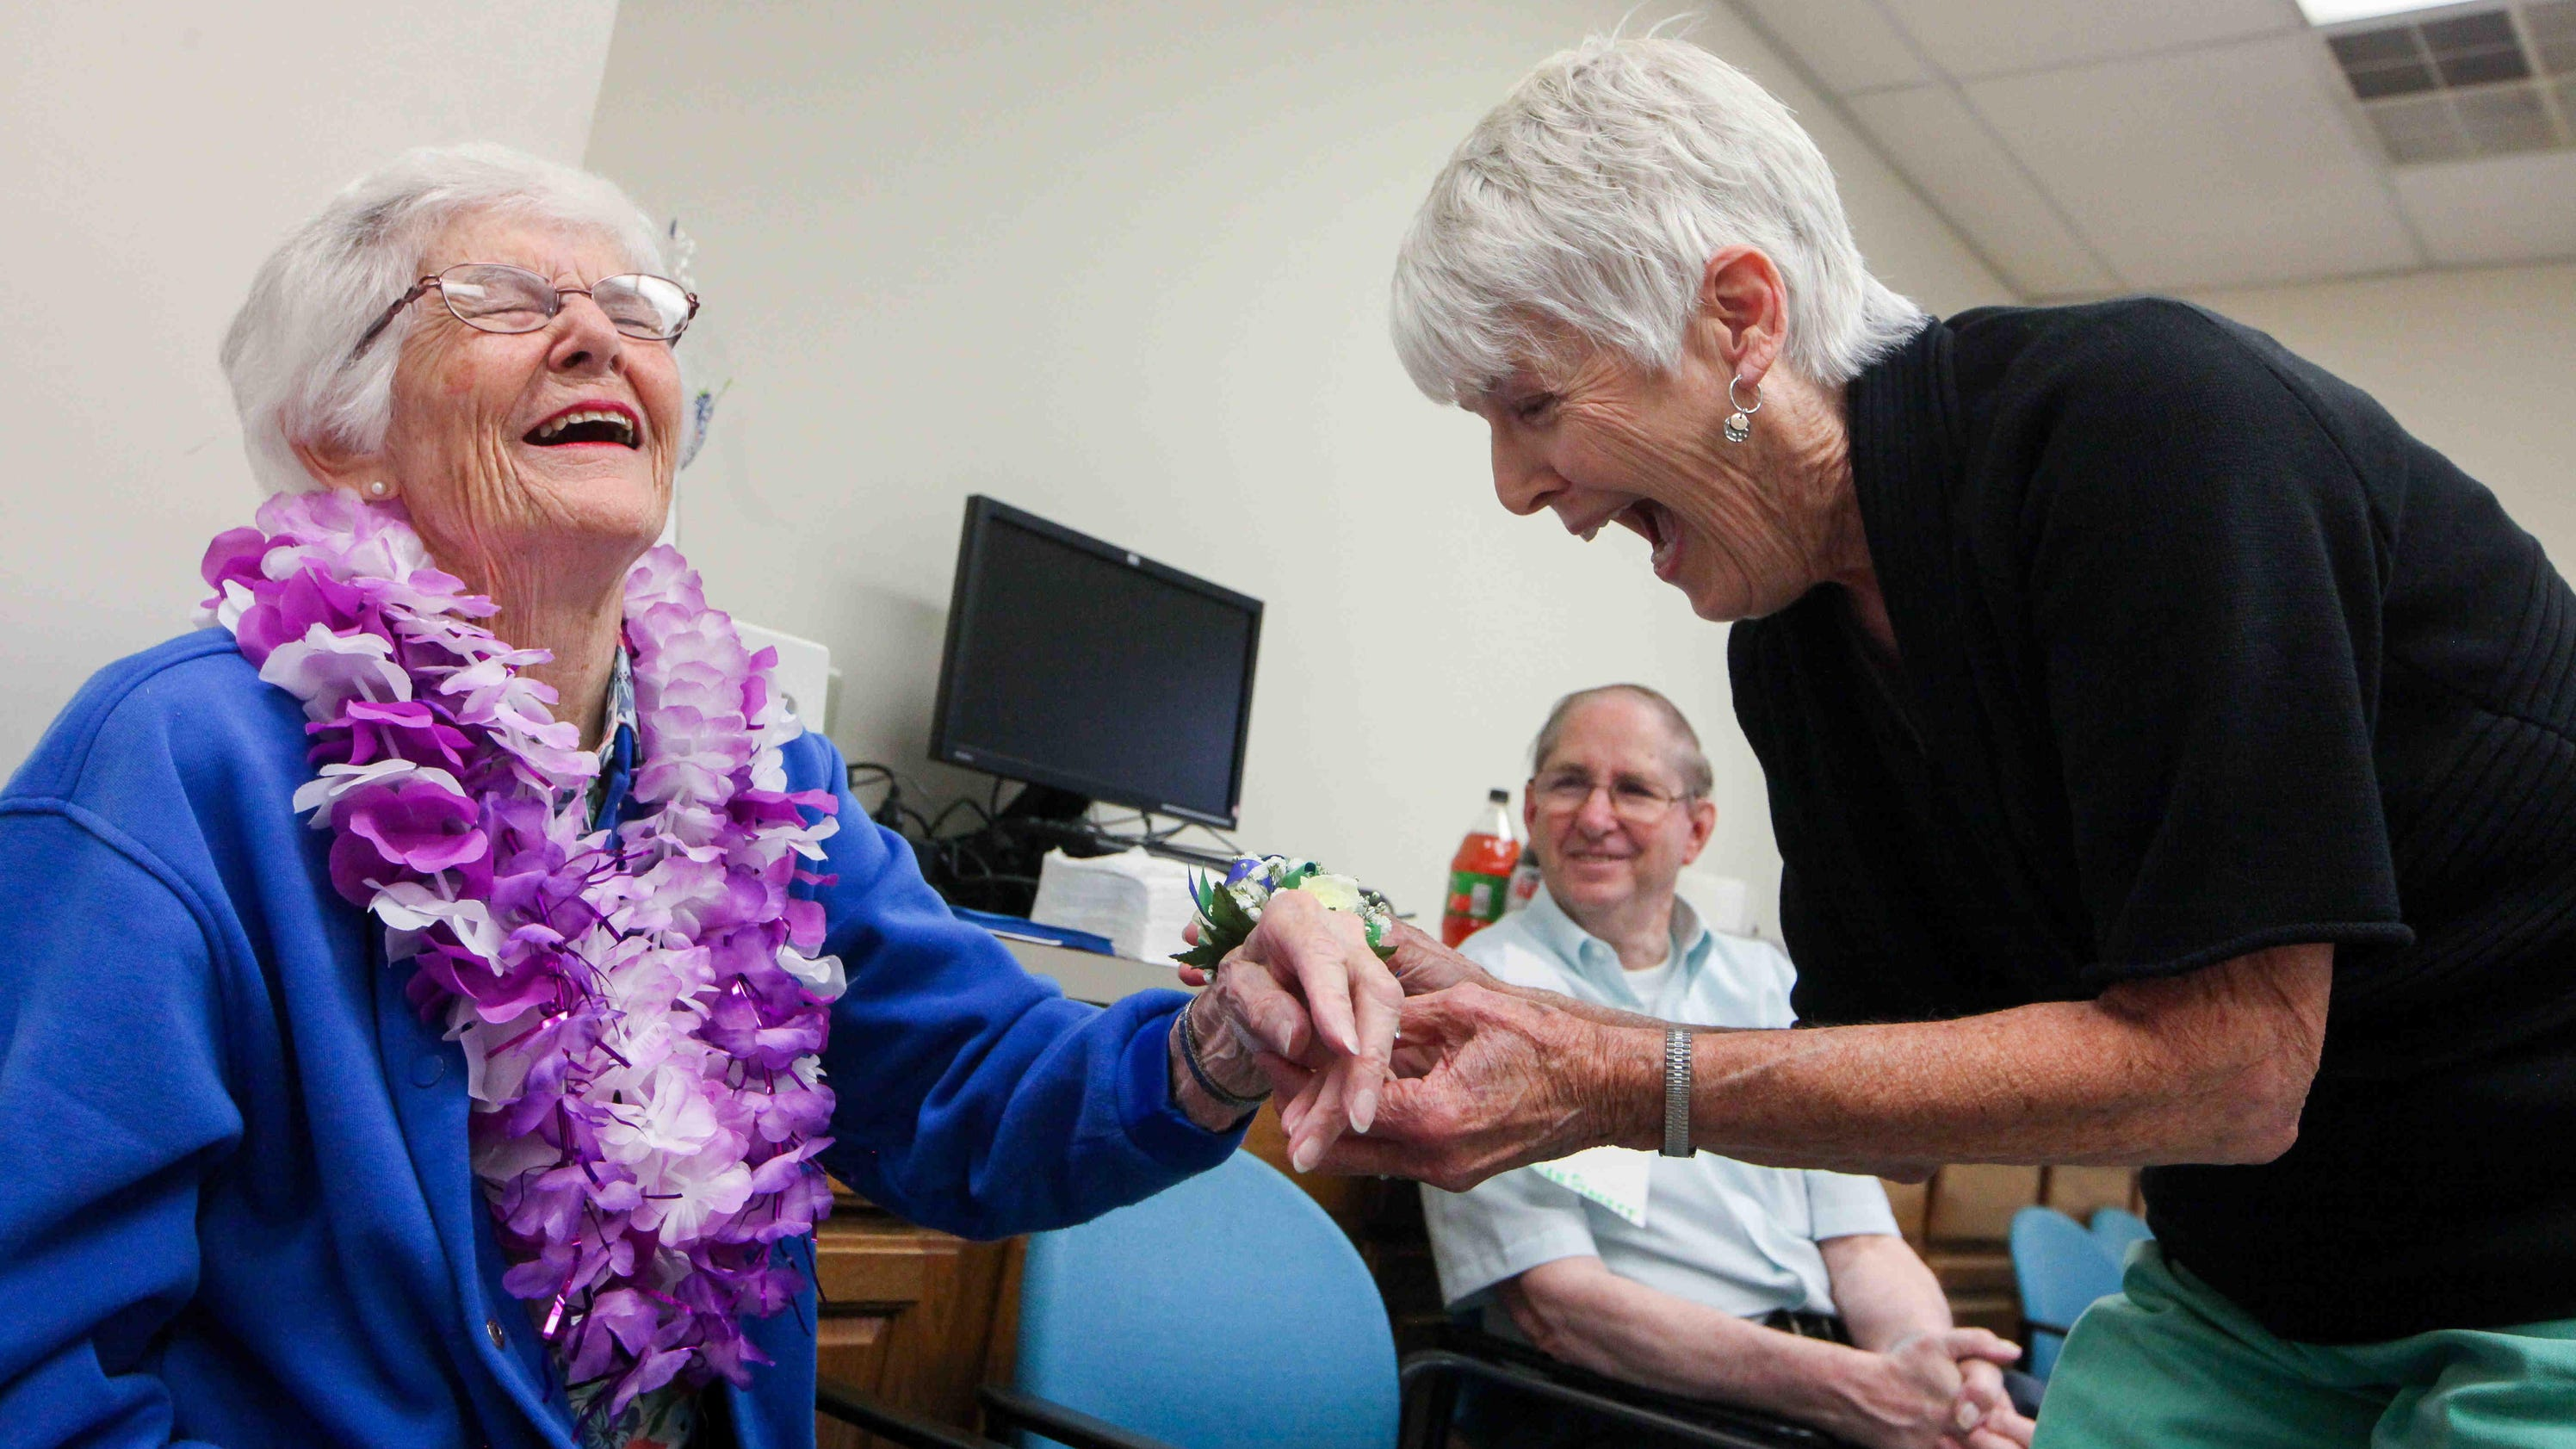 Crisis call center volunteer, 93, retires after 41 years